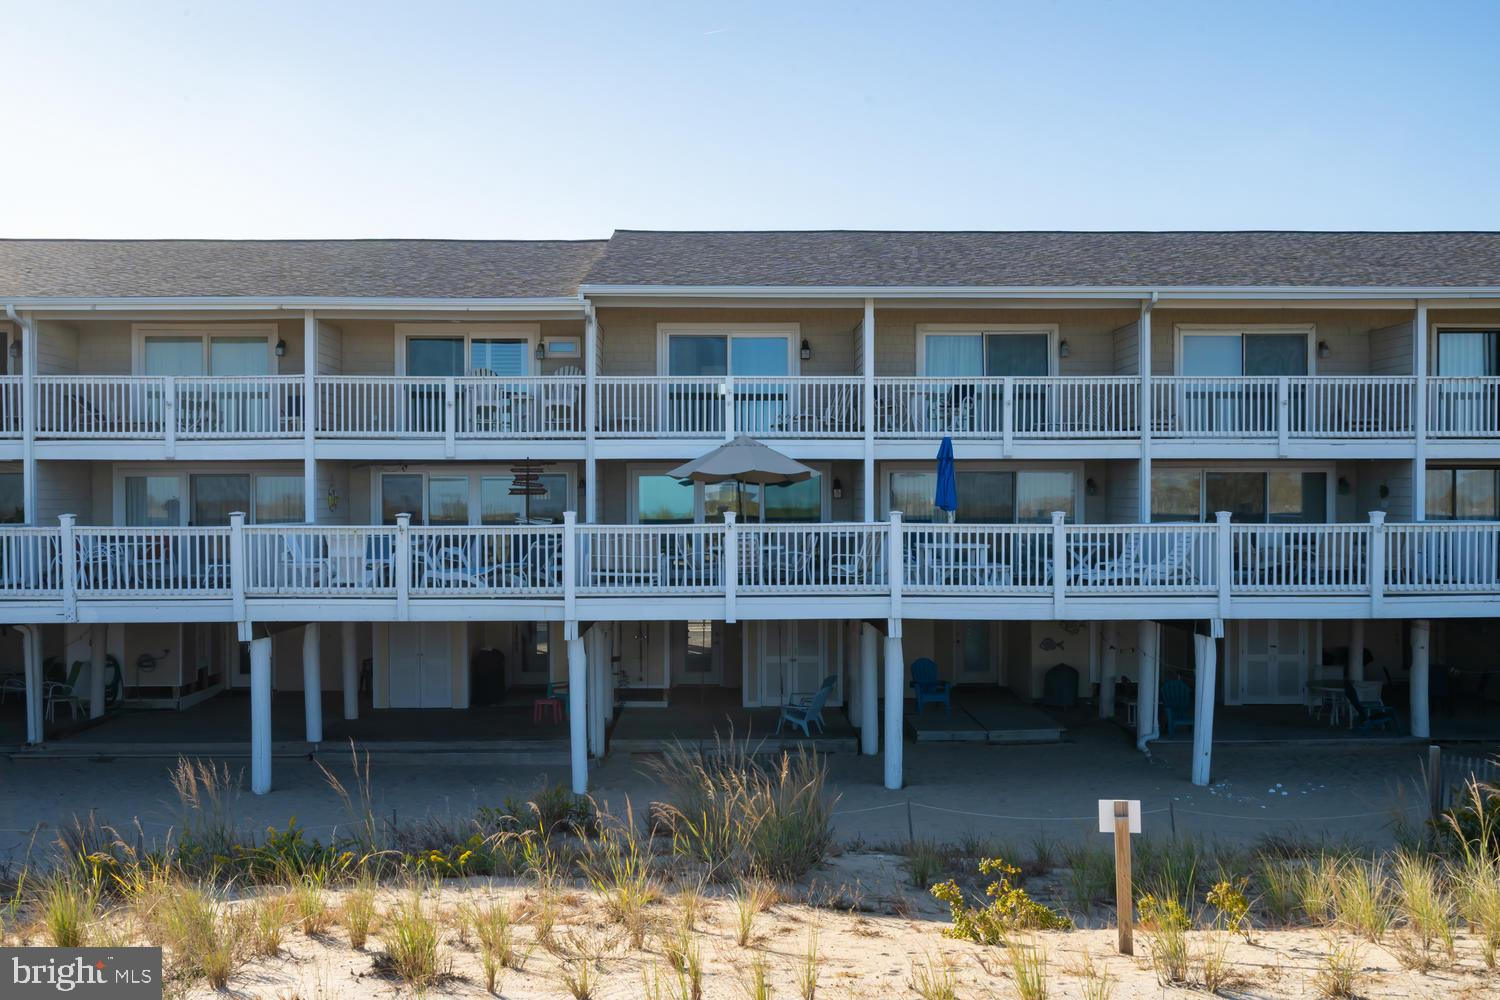 Wake up in your Master bedroom overlooking the Ocean! Gorgeous views of the Ocean and Dunes from eac